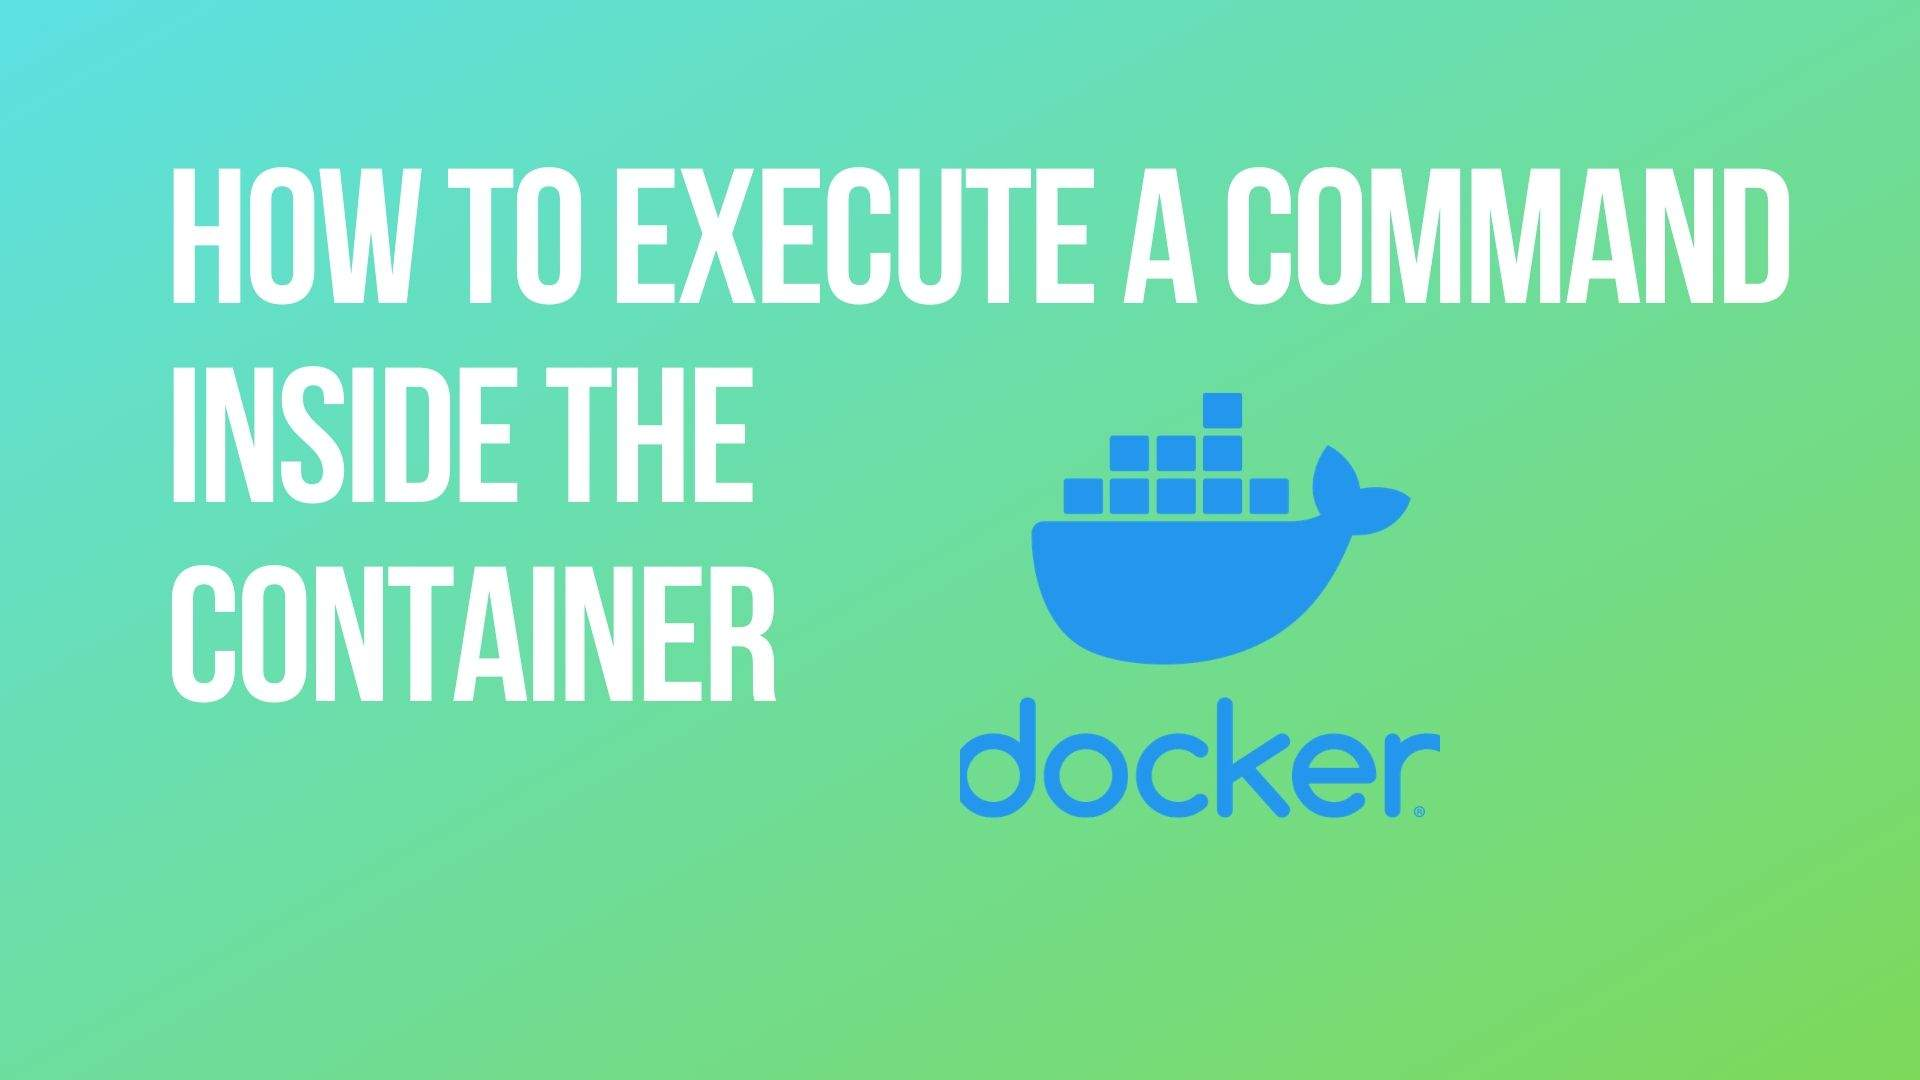 How to execute a command inside the container